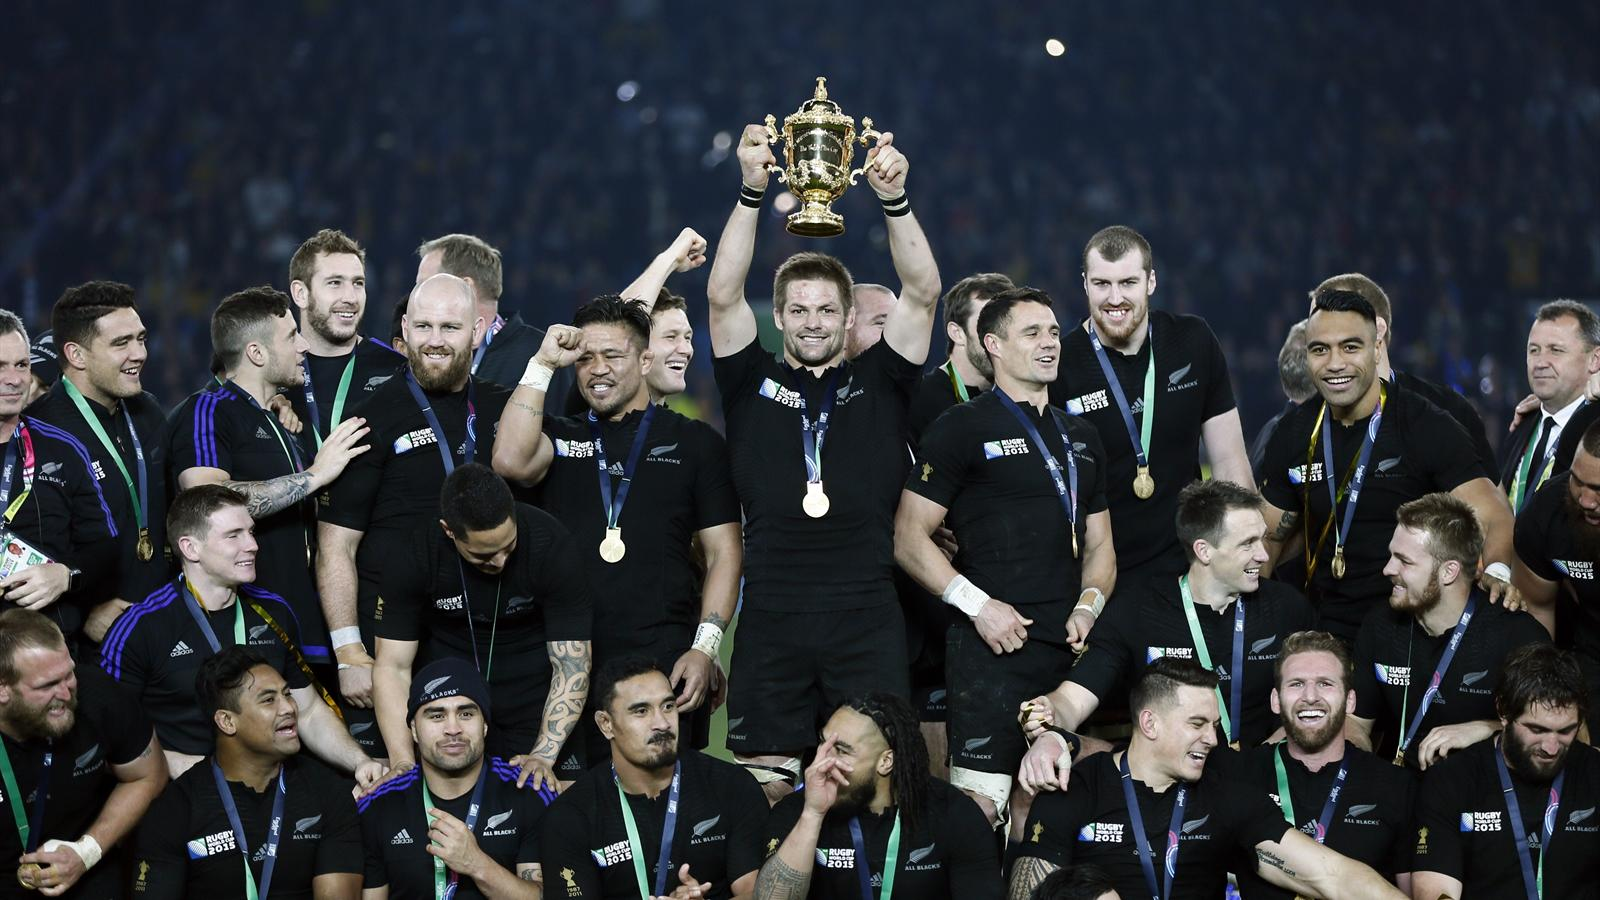 Richie McCaw of New Zealand (C) holds up the Webb Ellis trophy after winning the Rugby World Cup Final against Australia at Twickenham